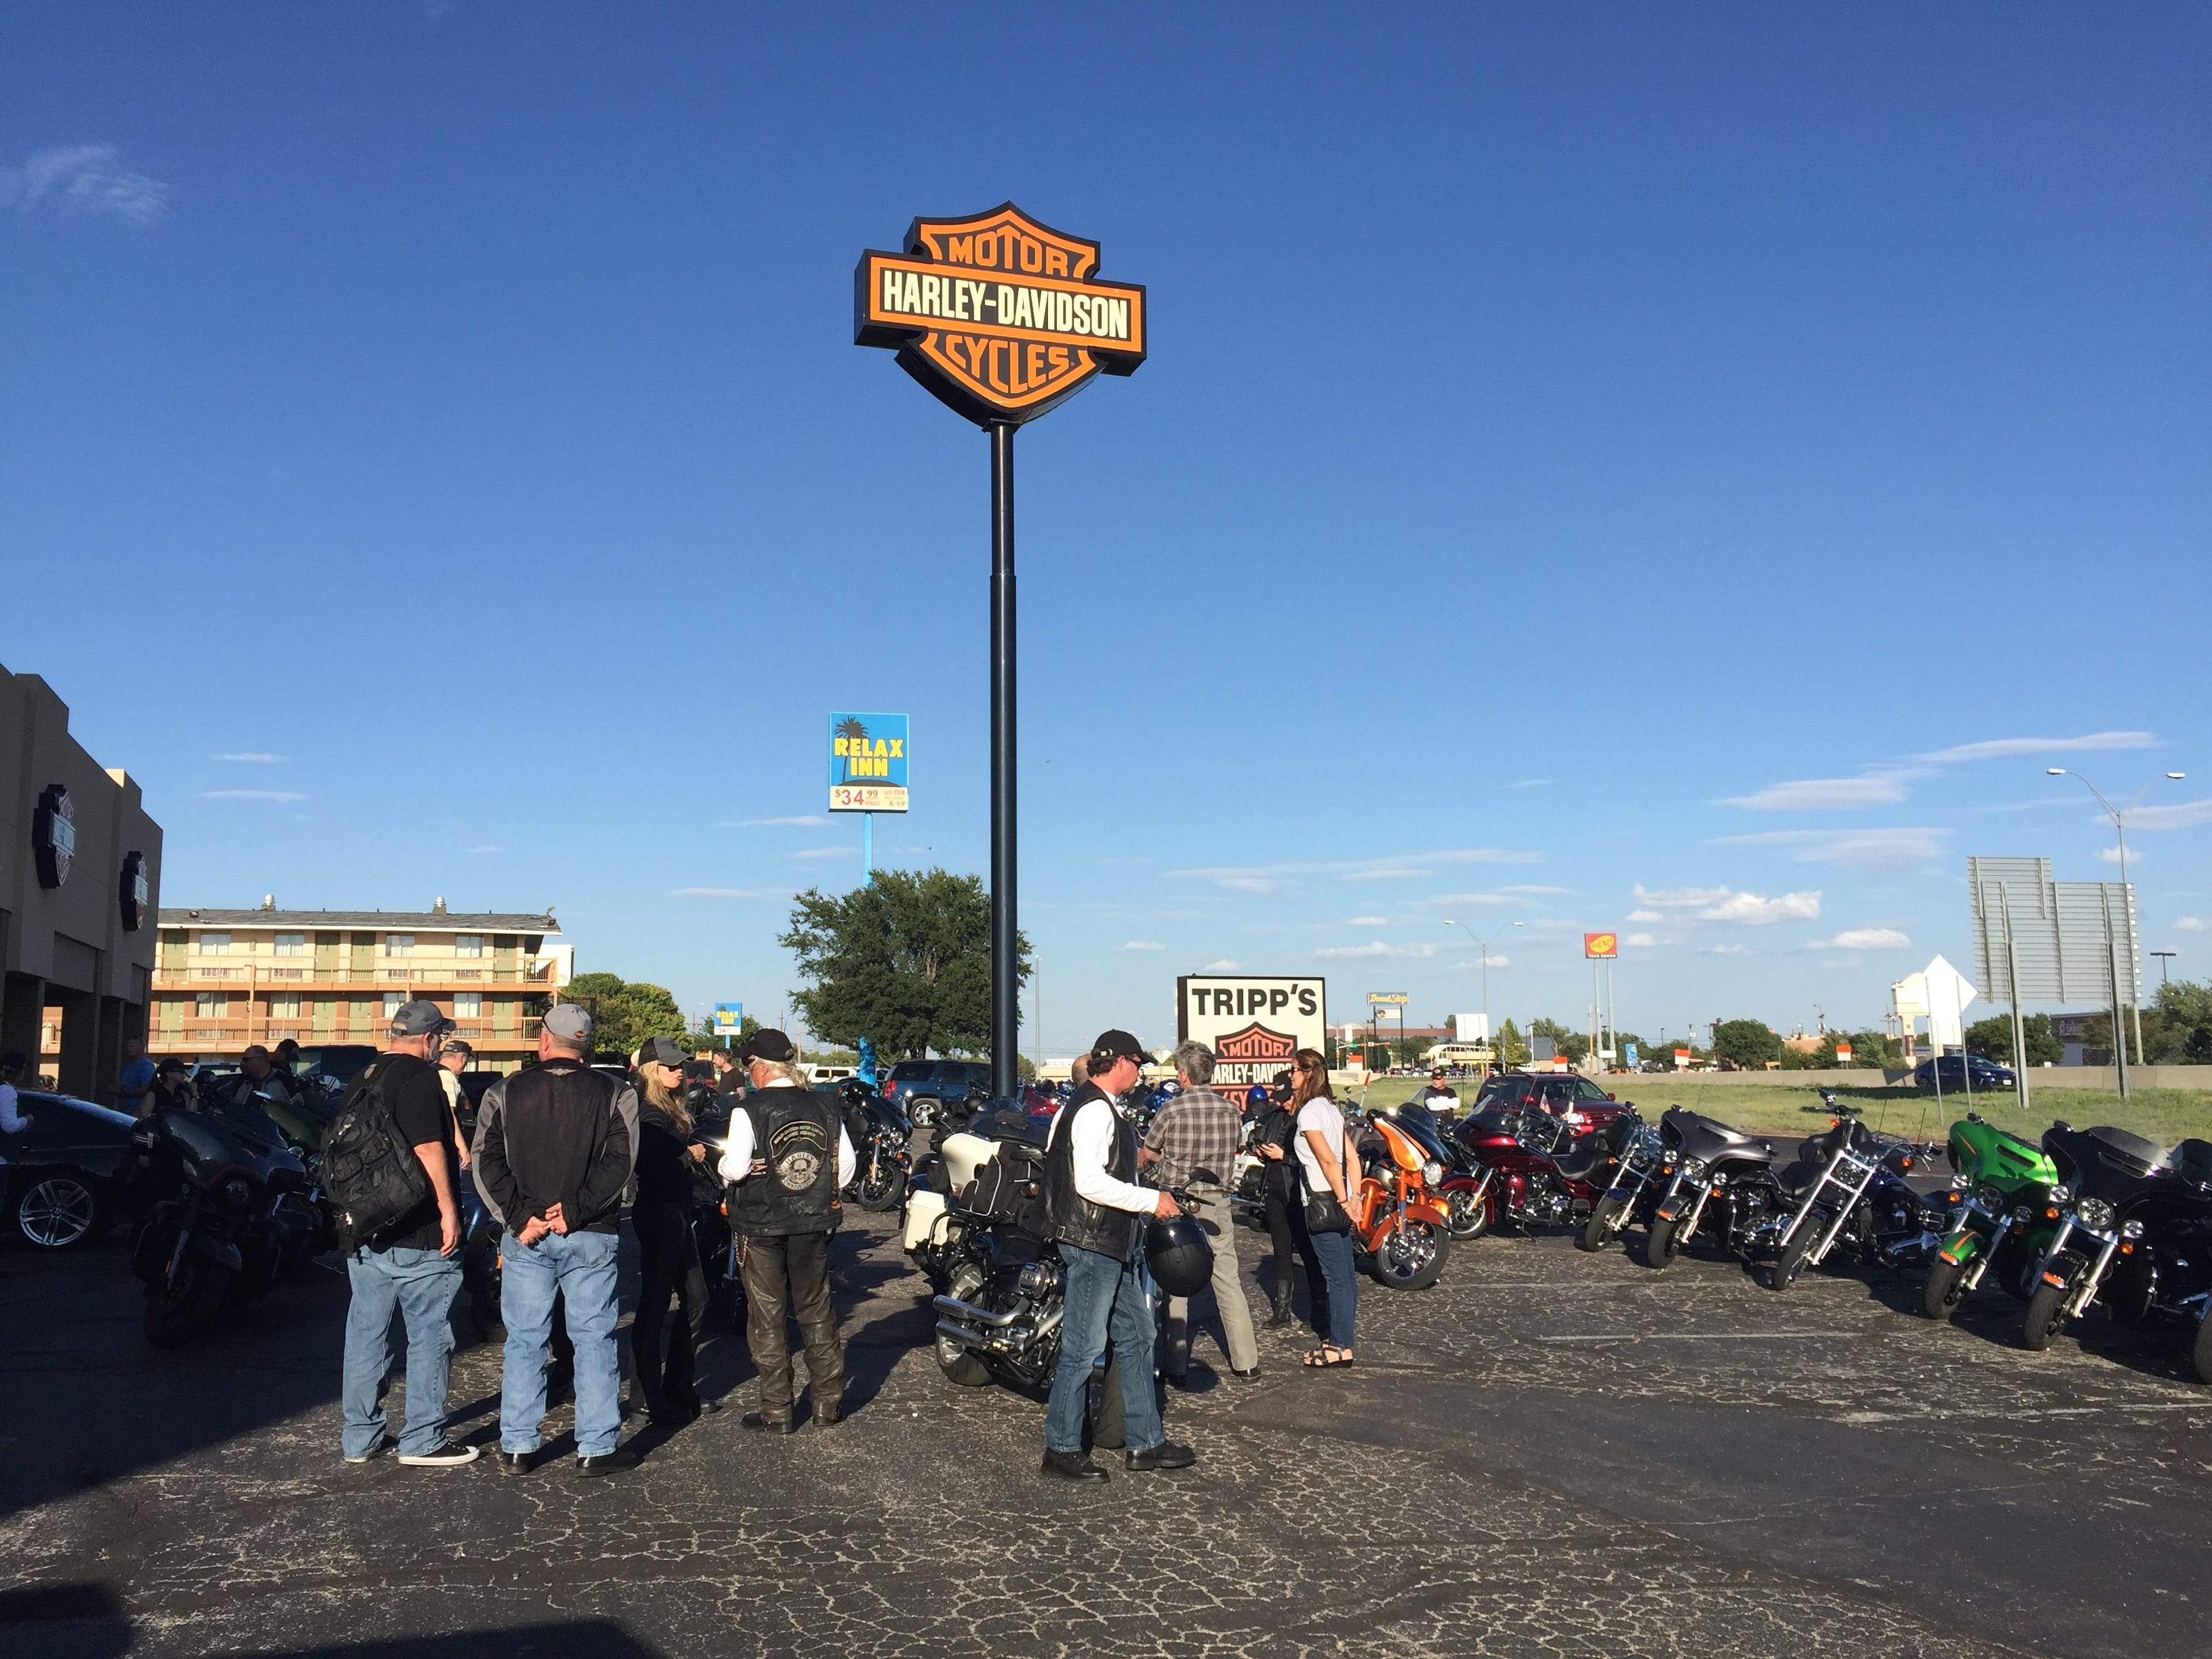 Each leg of the trip includes a visit to at least one dealership, where Harley-Davidson executives including Karen Davidson, Bill Davidson, John Olin and Heather Malenshek, meet with dealership owners and customers. Here, they met with people at the Duke City Harley-Davidson in Albuquerque, N.M., on day 3 of the 9-day ride.